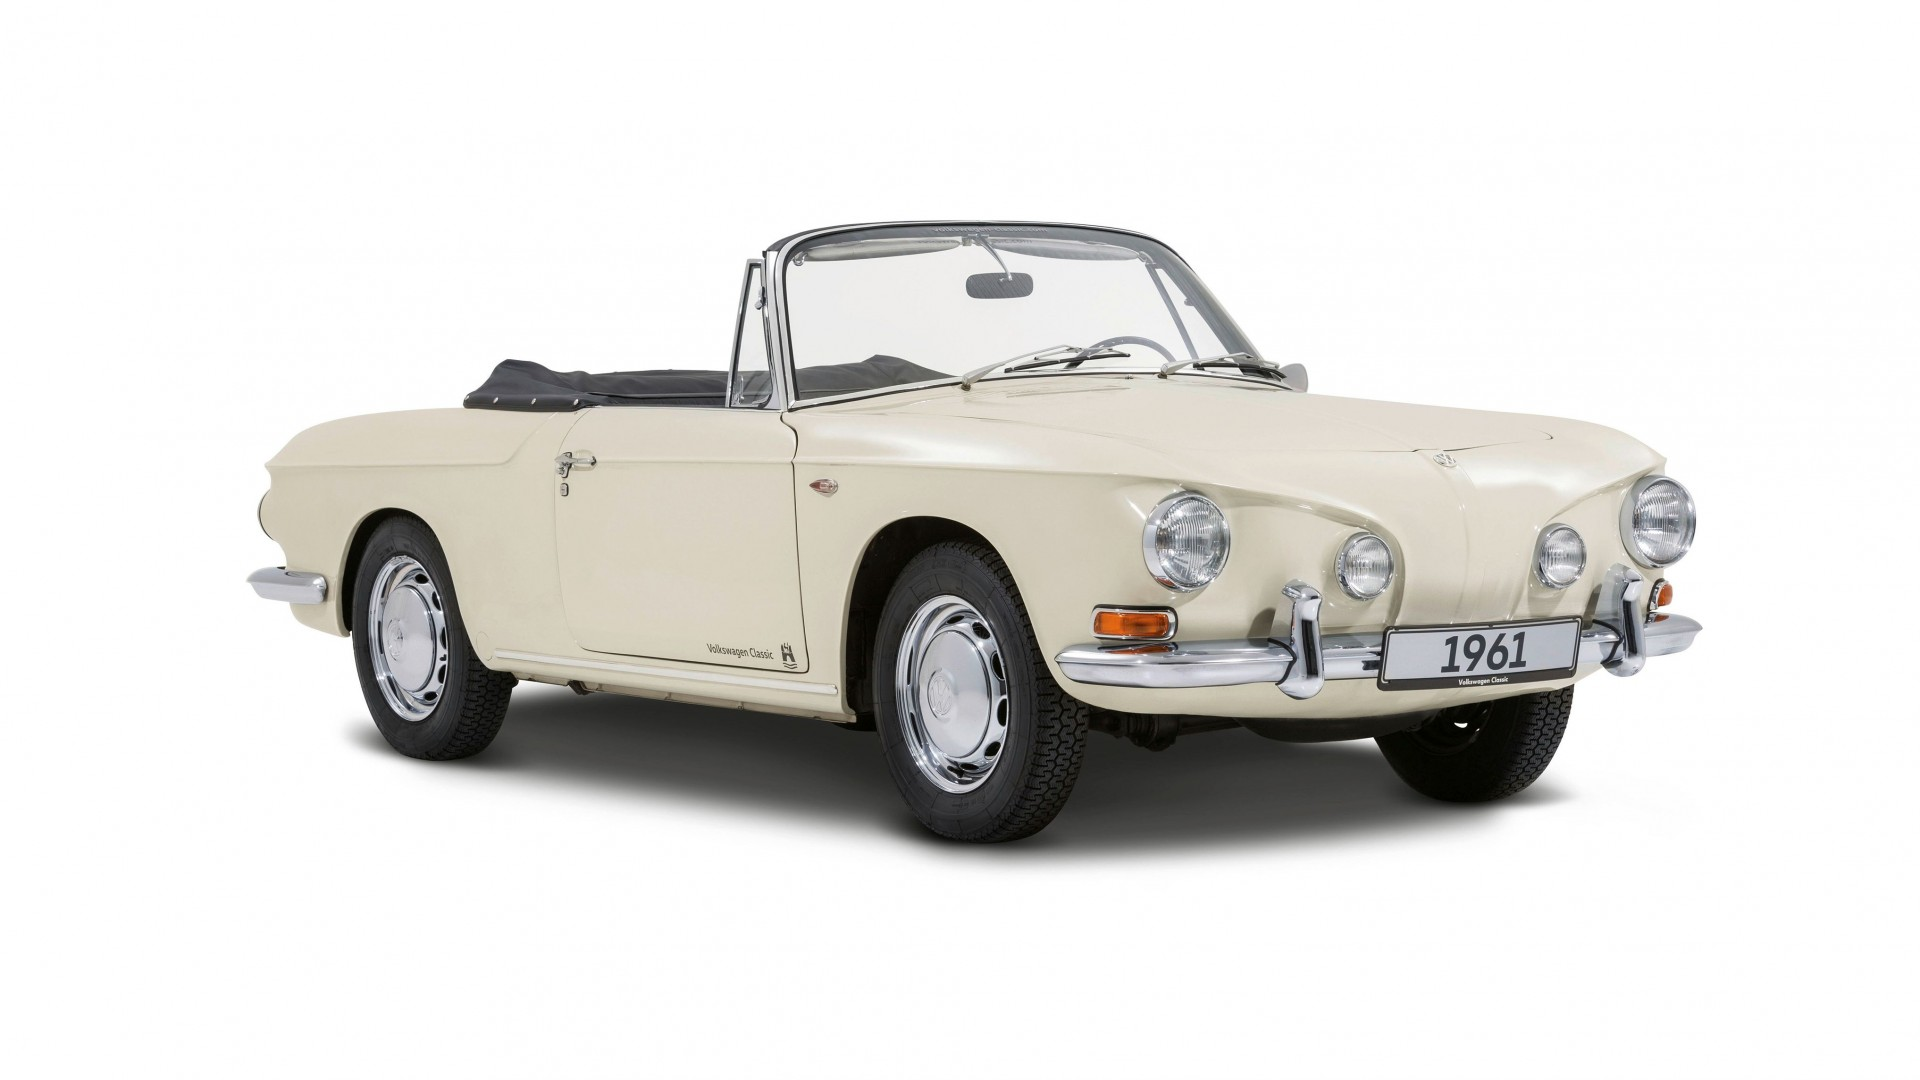 Karmann Ghia Type 34 convertible prototype